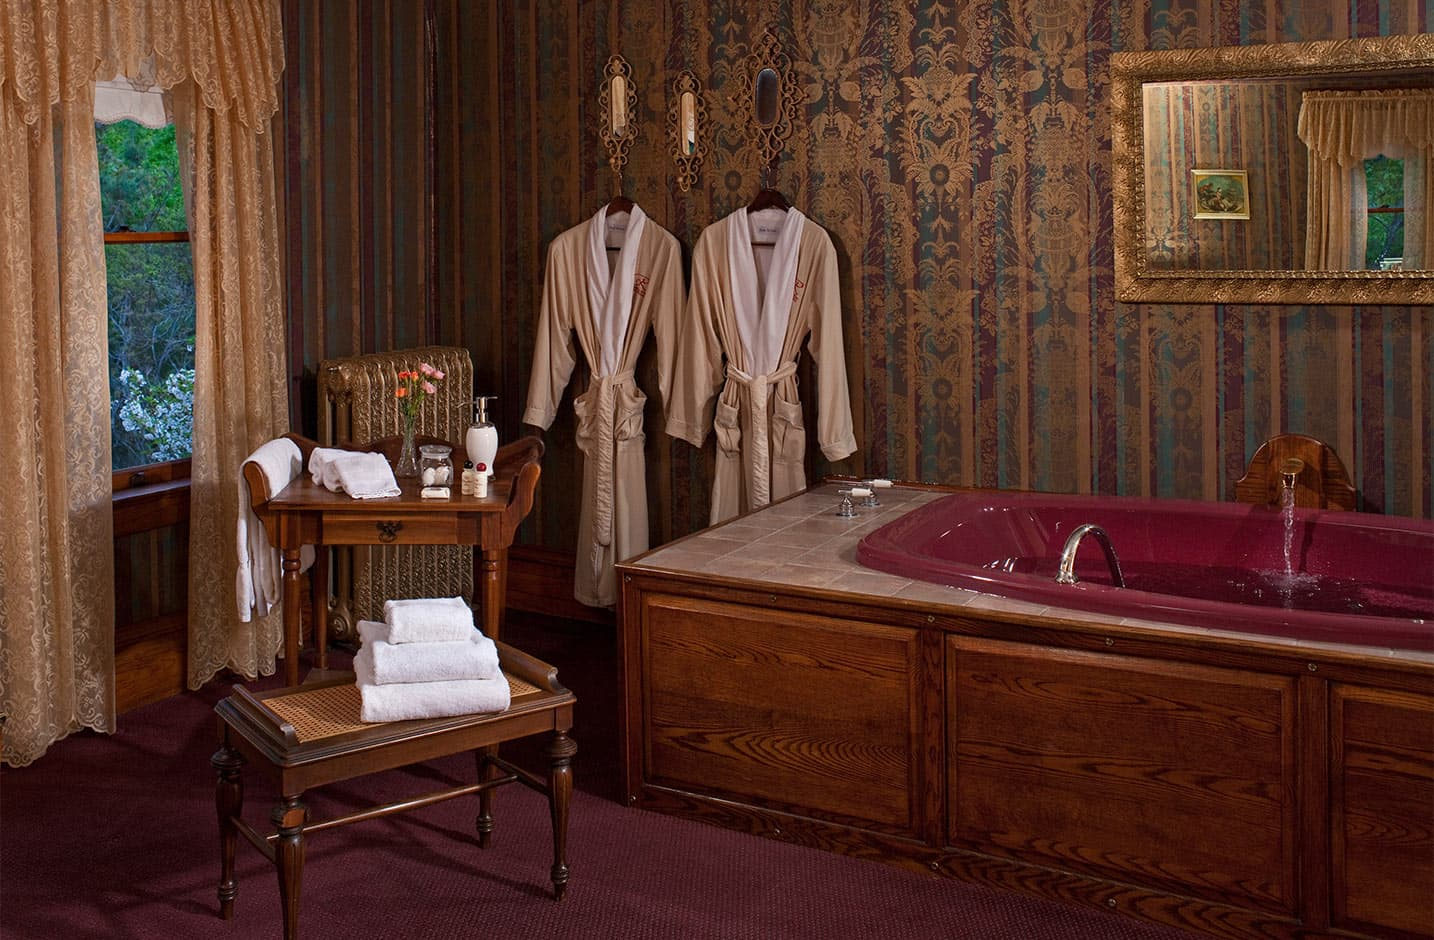 Whirlpool tub with two bath robes and towels